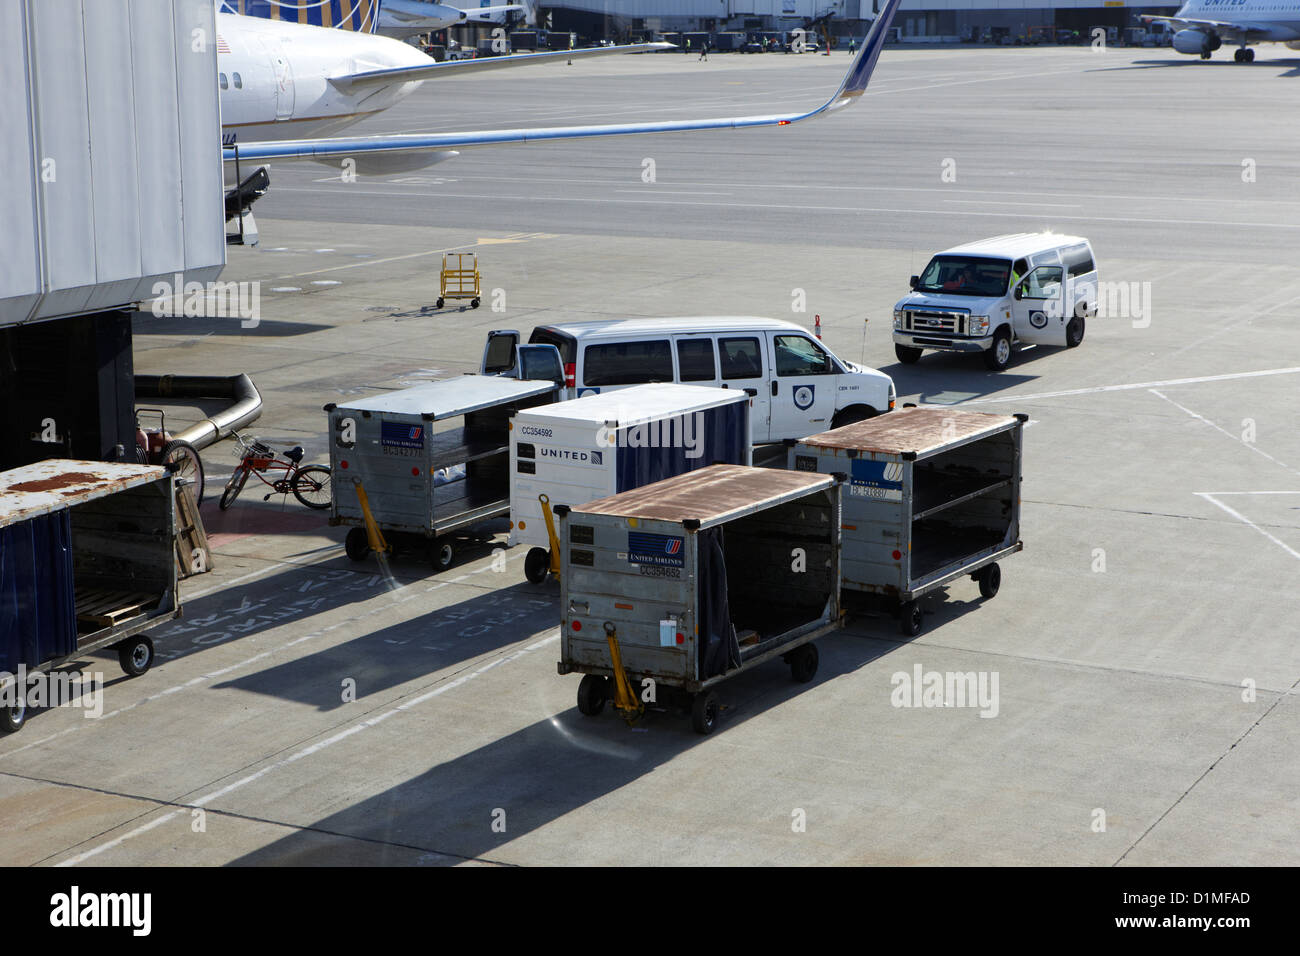 united airlines luggage carts and service vehicles on stand at San Francisco International Airport California USA - Stock Image